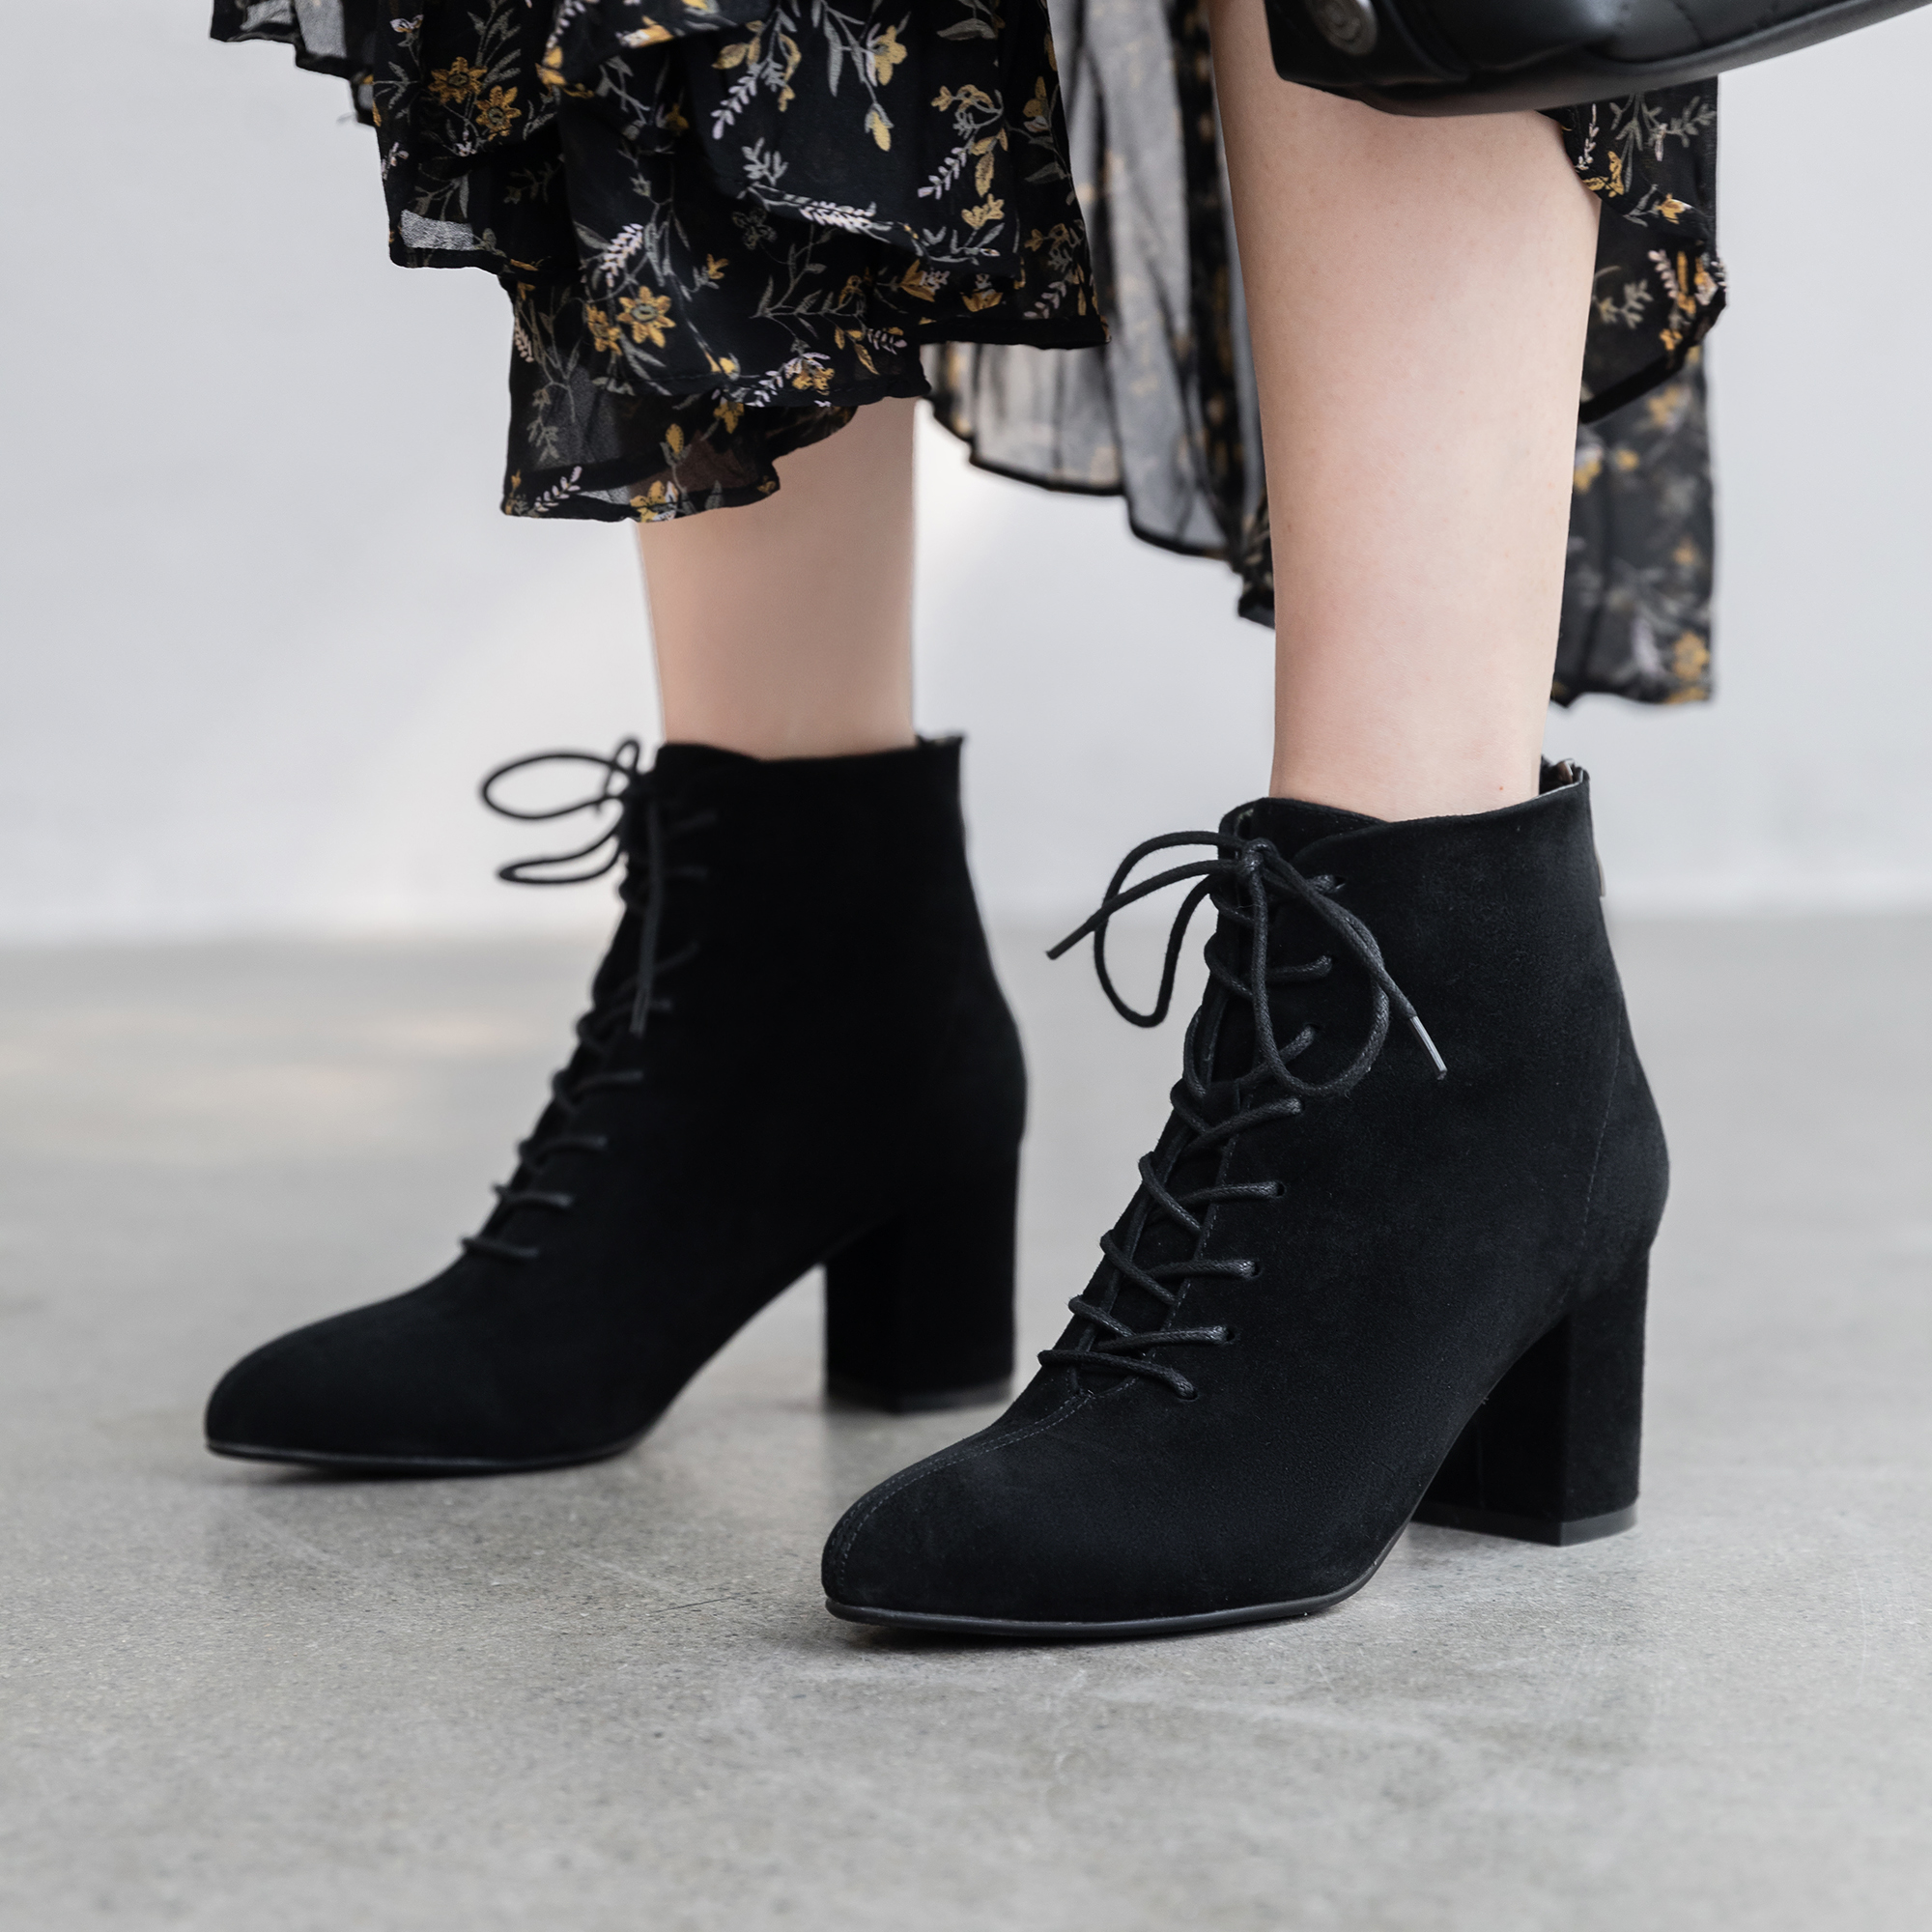 Winter Boots Women Lace Up Leather Boots Women Fashion Ankle Boots for Women 5cm in Ankle Boots from Shoes